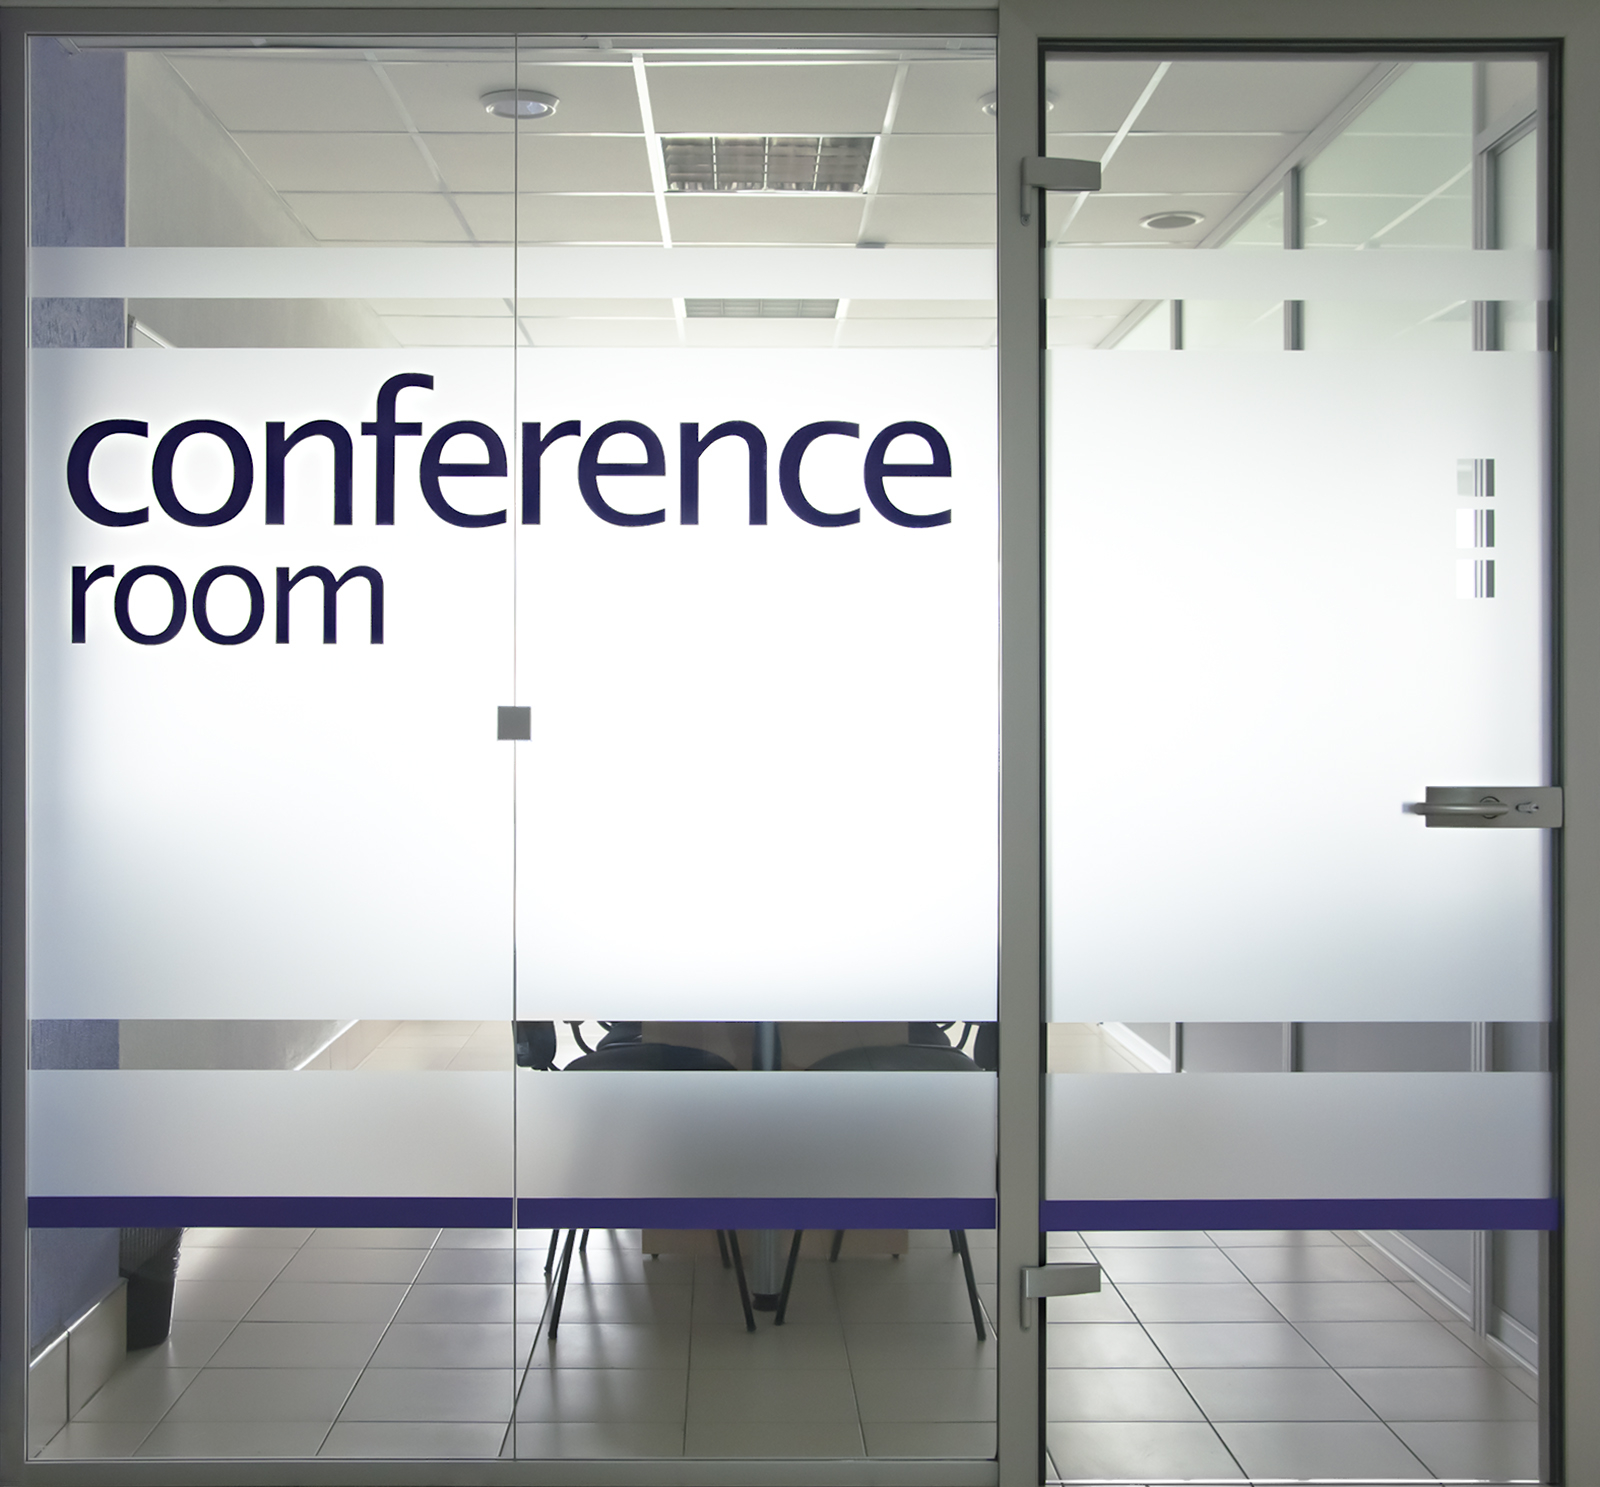 Conference Room Names On Glass